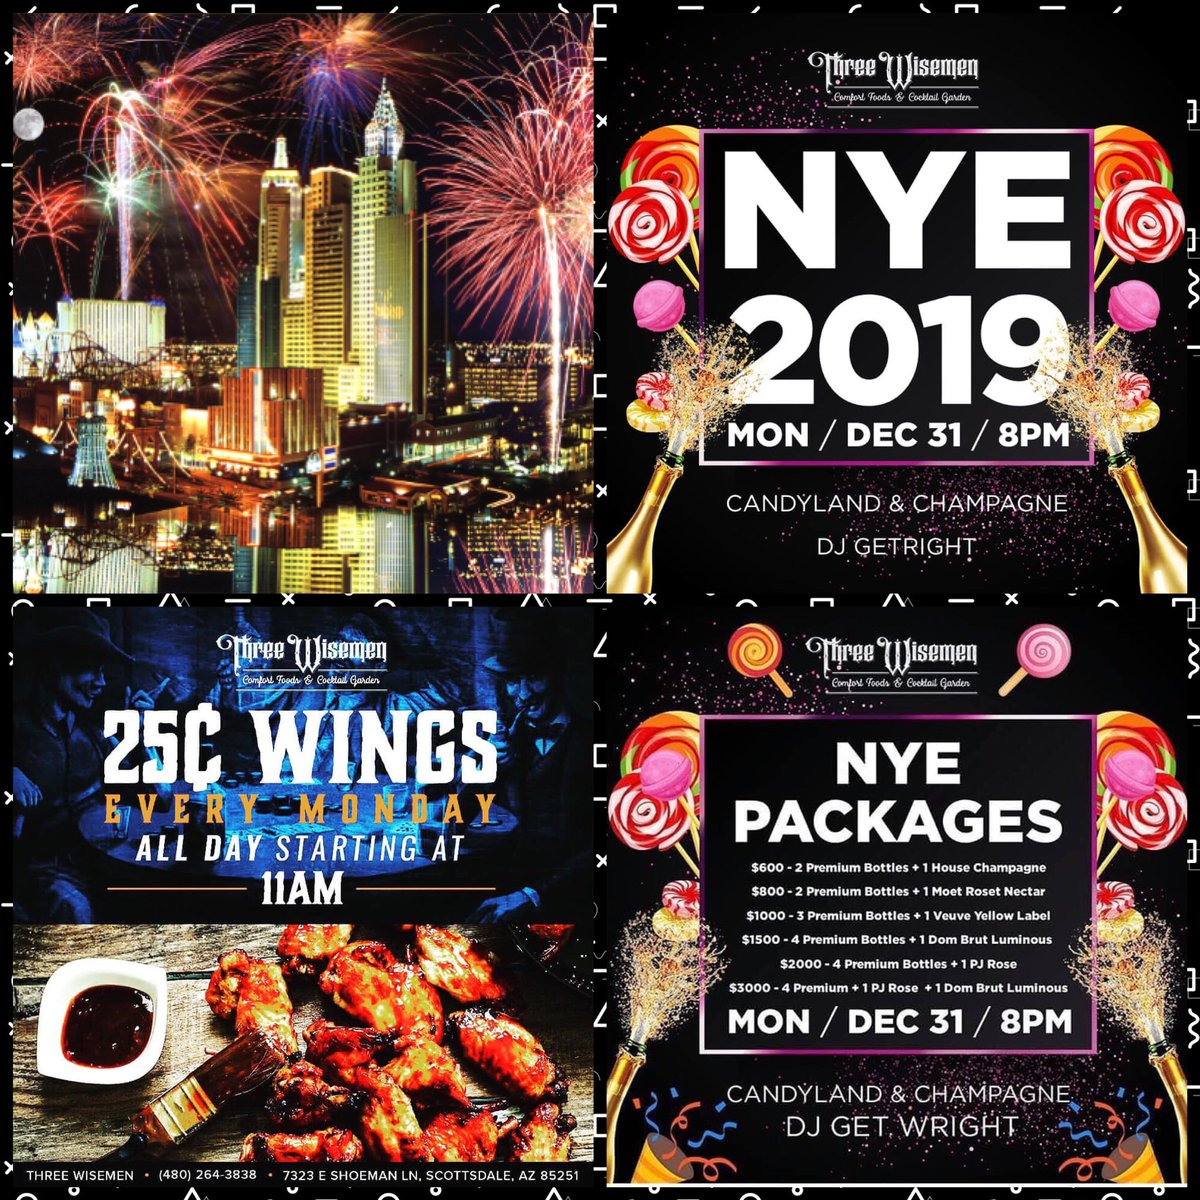 Three Wisemen NYE 2019 w/ DJ Get Wright & Friends | 25 Cent Wings from 11am ~ 8pm | Late Night Food 2am ~ 6pm | 6am ~ We are Open for Business 🎉🍔🍻🍟 Gem Ray at 480.772.7613 (Text) ... http://www.threewisemenaz.com @ScottsdaleNites @GemRayMedia